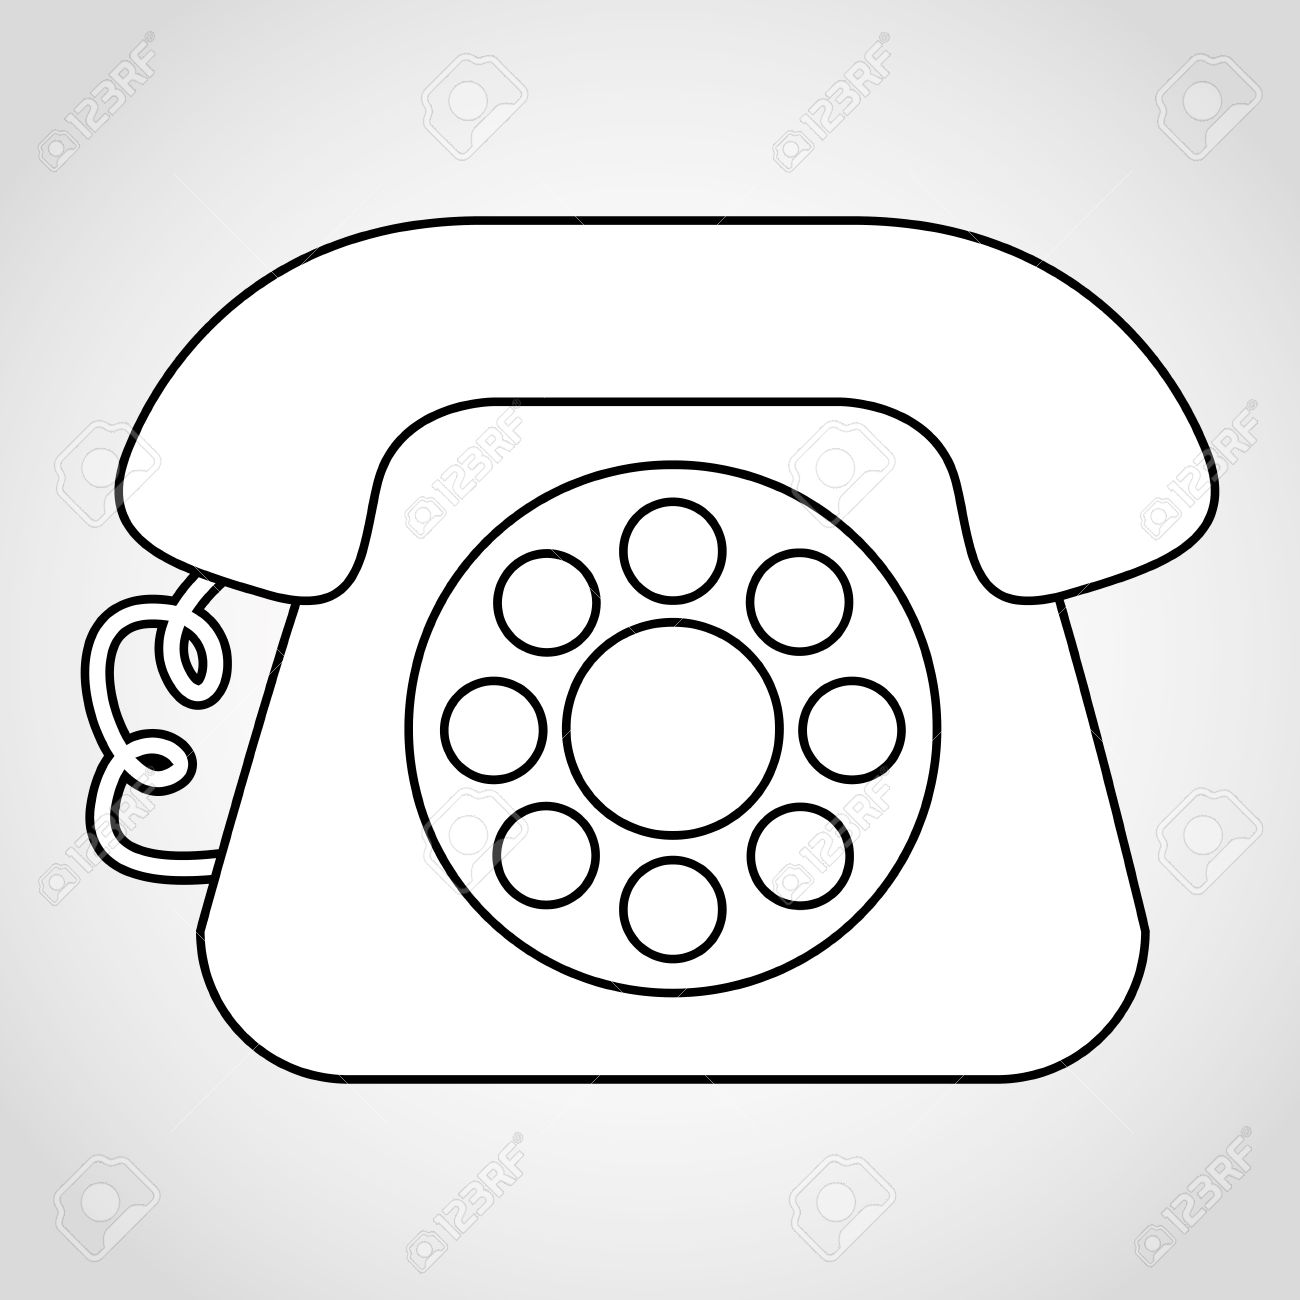 1300x1300 Old Telephone Design Royalty Free Cliparts Vectors And Stock